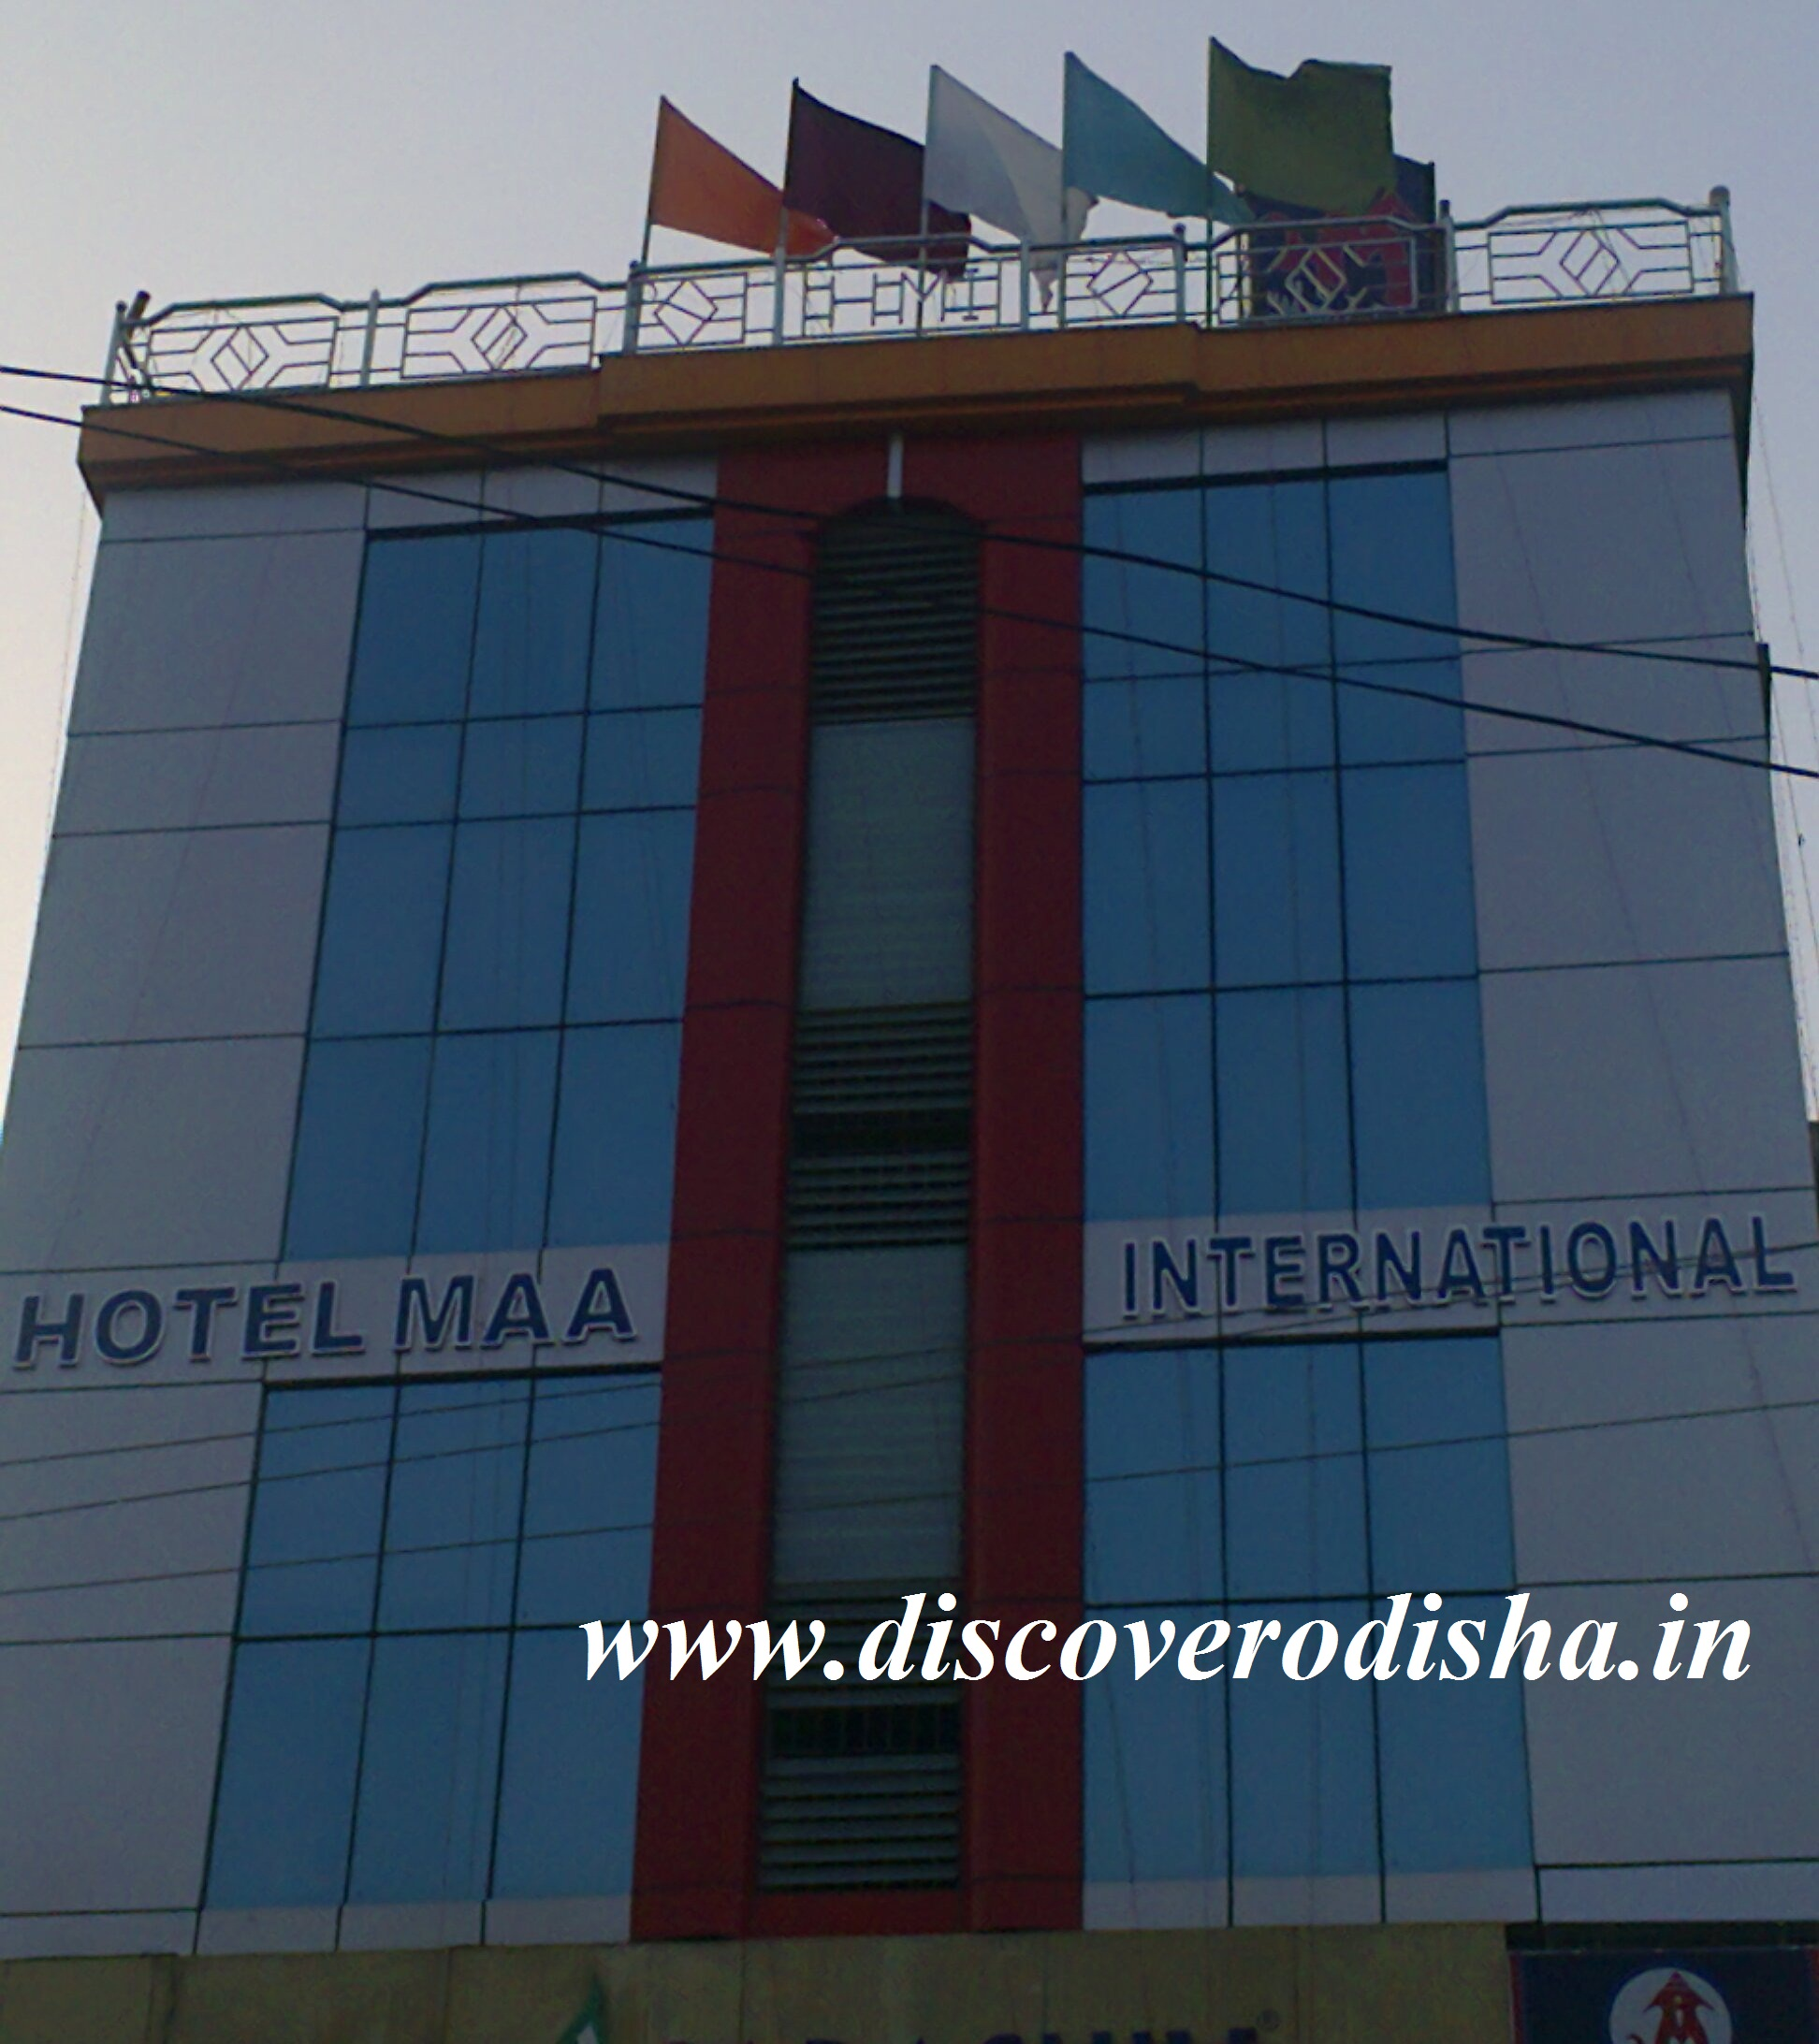 Hotel Maa International